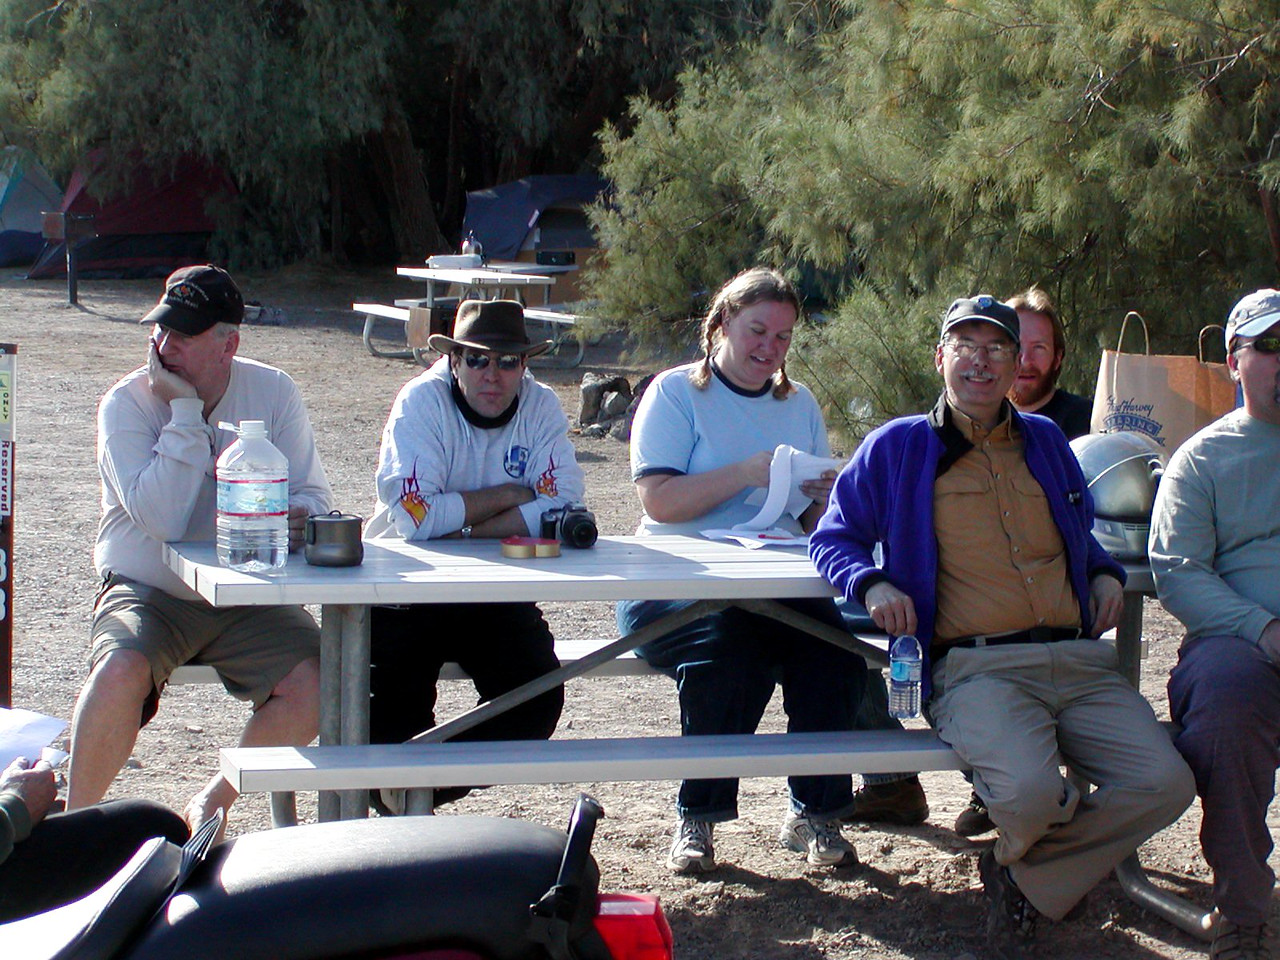 (l to r) Tom Connolly, Chuck Bell, Sara Barnes, Scot Marburger, Warren Barnes (behind Scot), and Roger Malone (truncated)